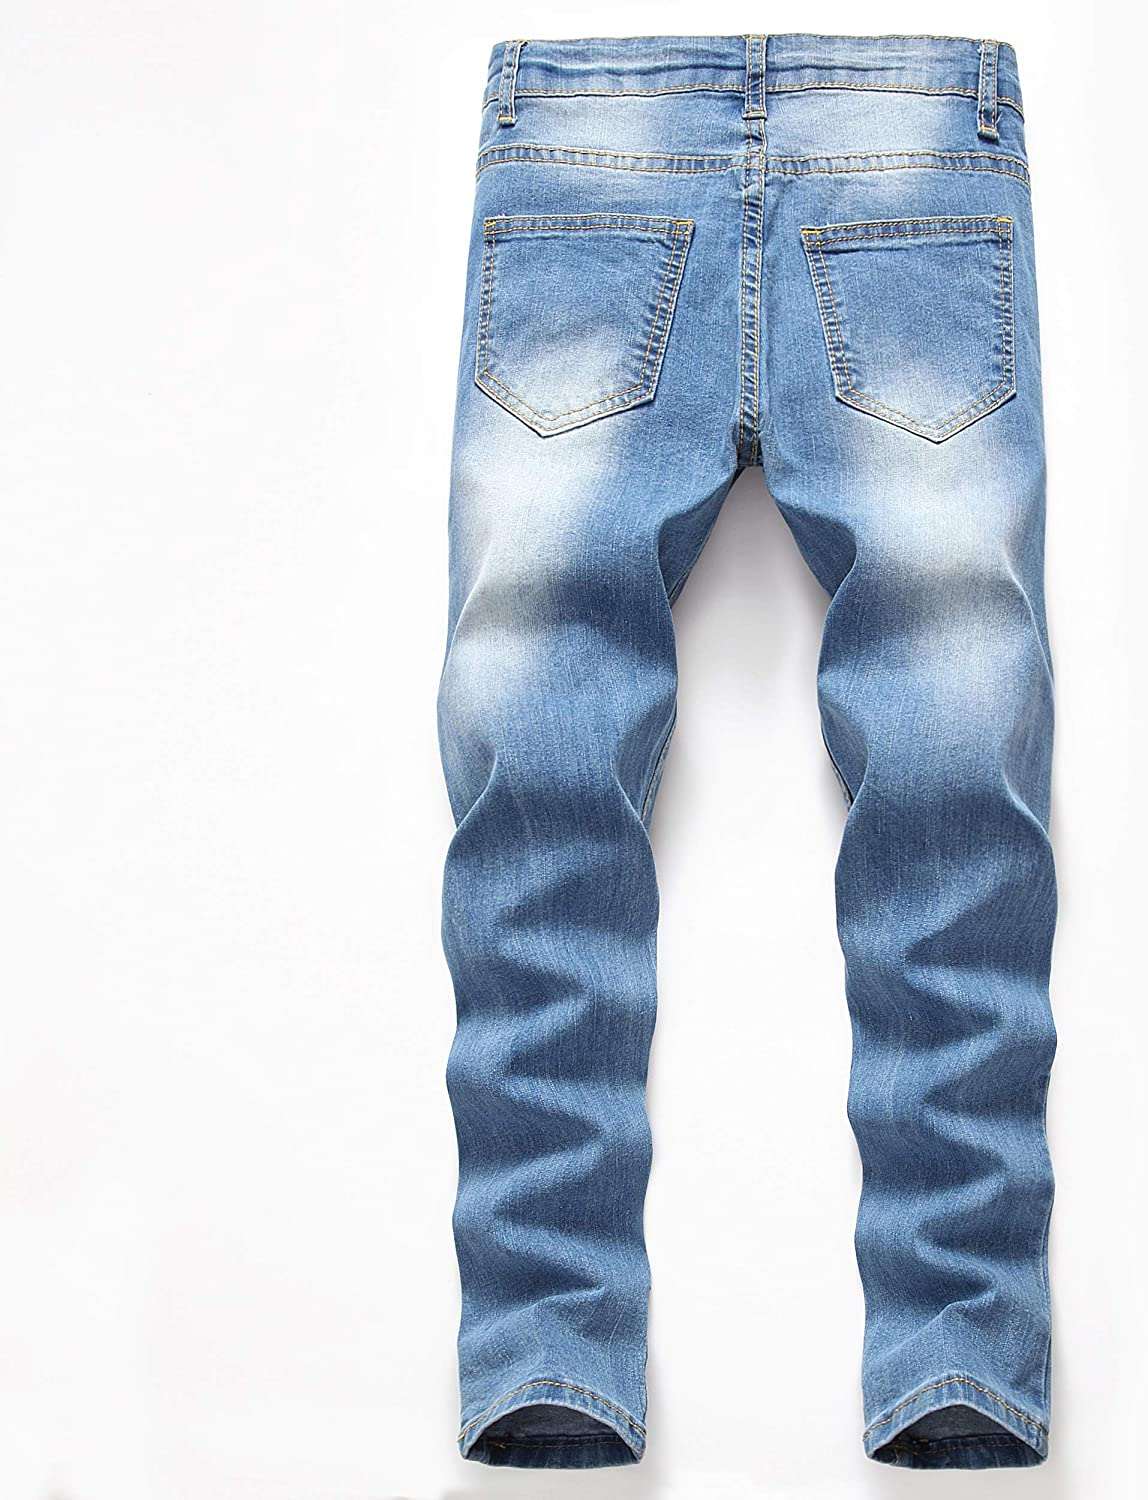 Lanscadran Boy's Skinny Fit Ripped Distressed Stretch Fashion Denim Jeans Pants: Clothing